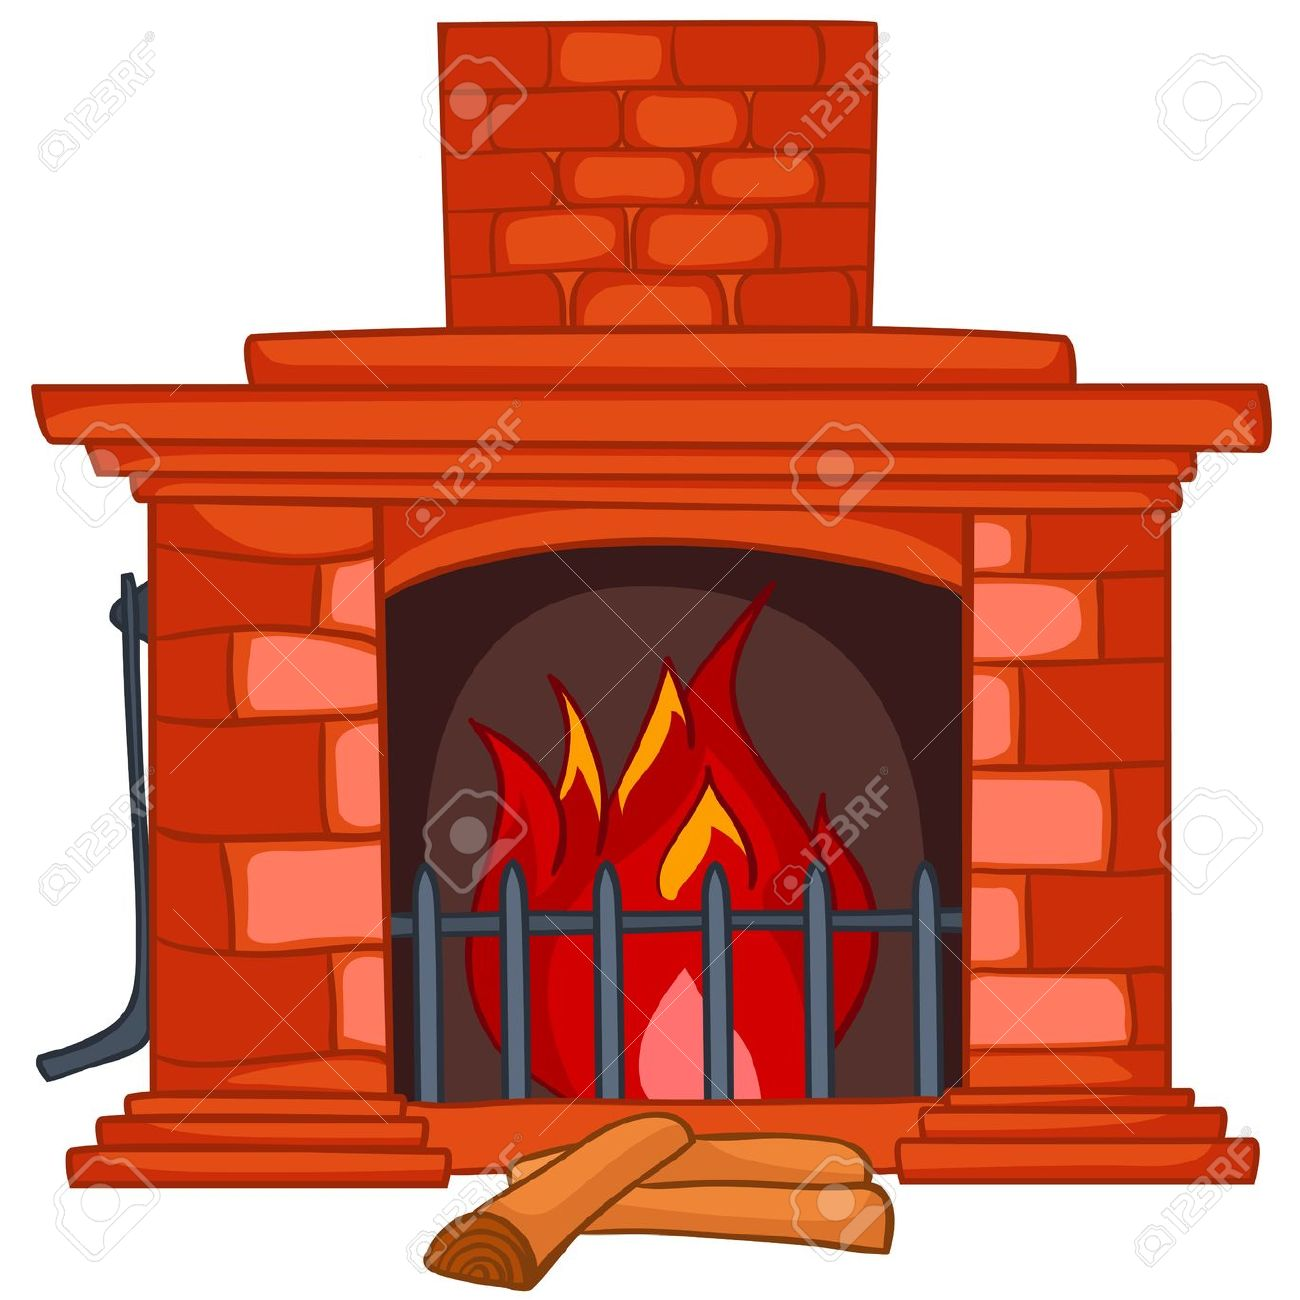 Cartoon Home Fireplace Royalty Free Cliparts, Vectors, And Stock.